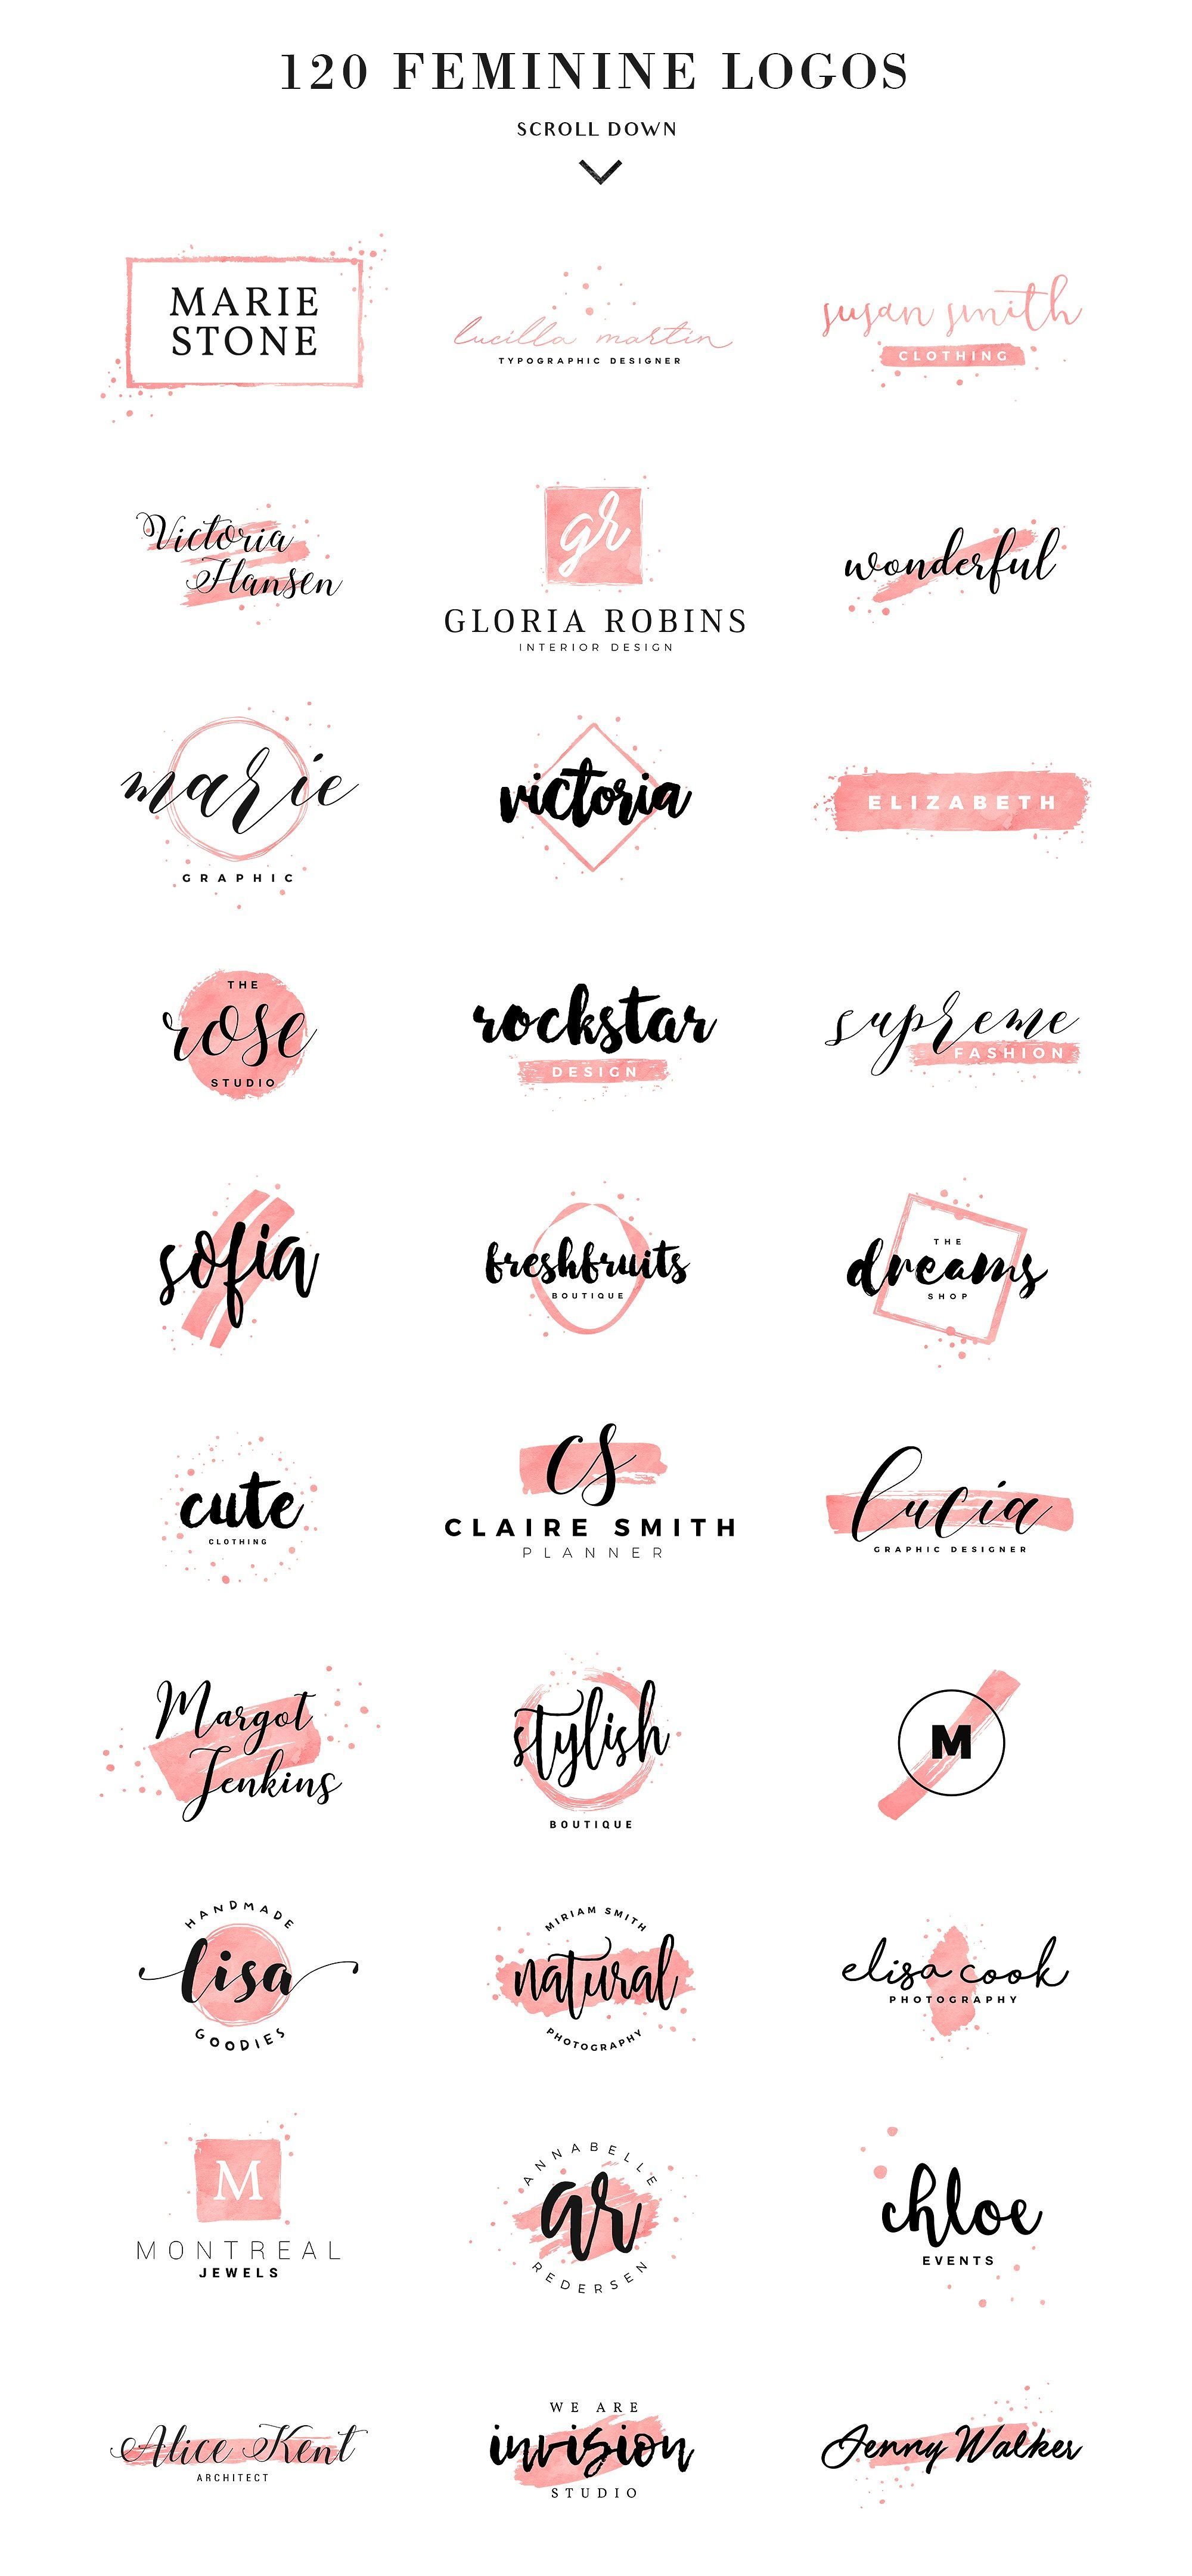 120 Feminine Branding Logos by Davide Bassu on